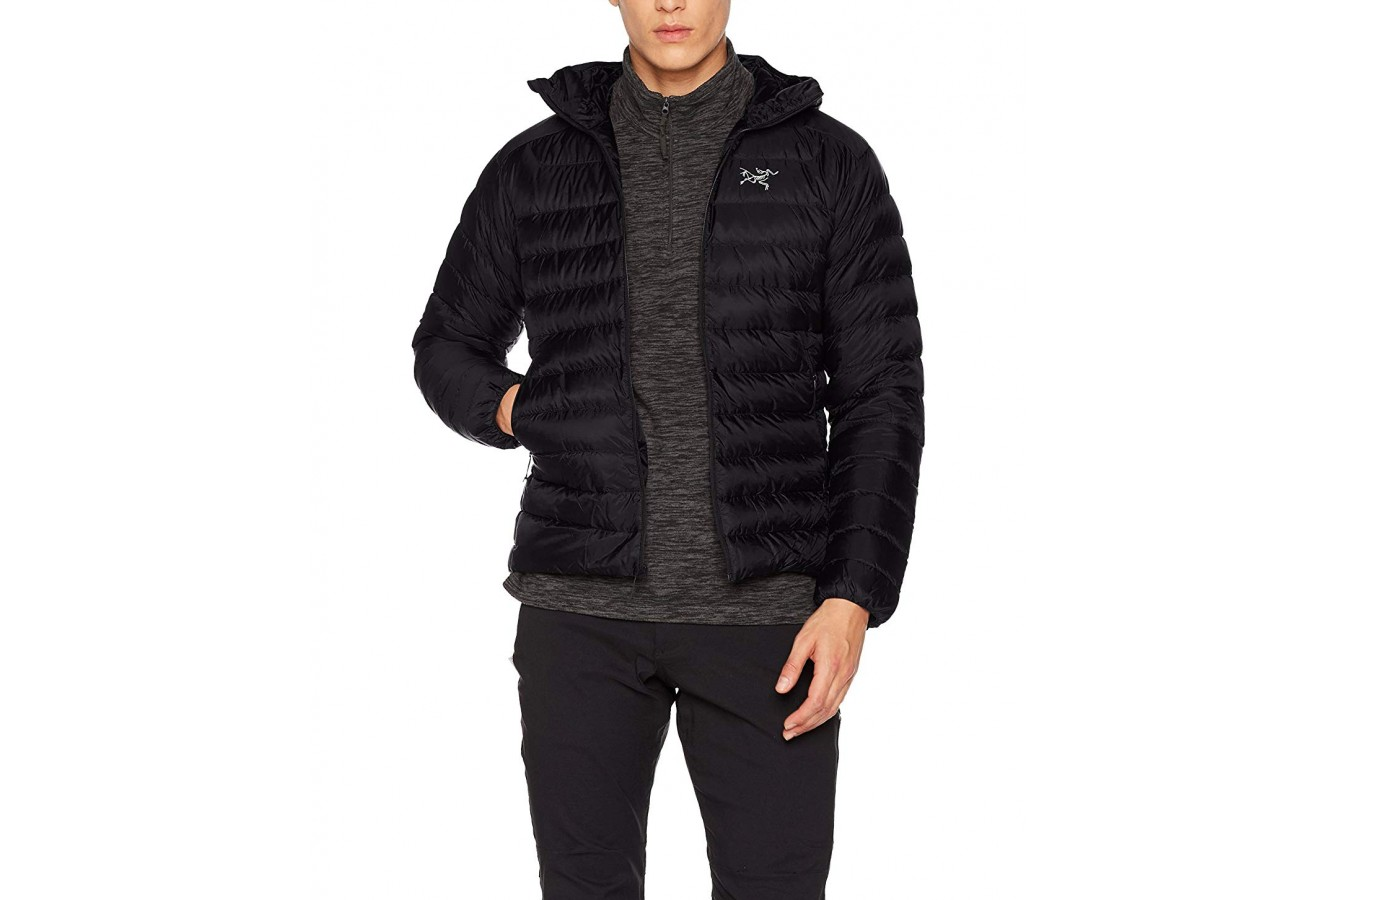 The Cerium LT has great warm to weight ratio